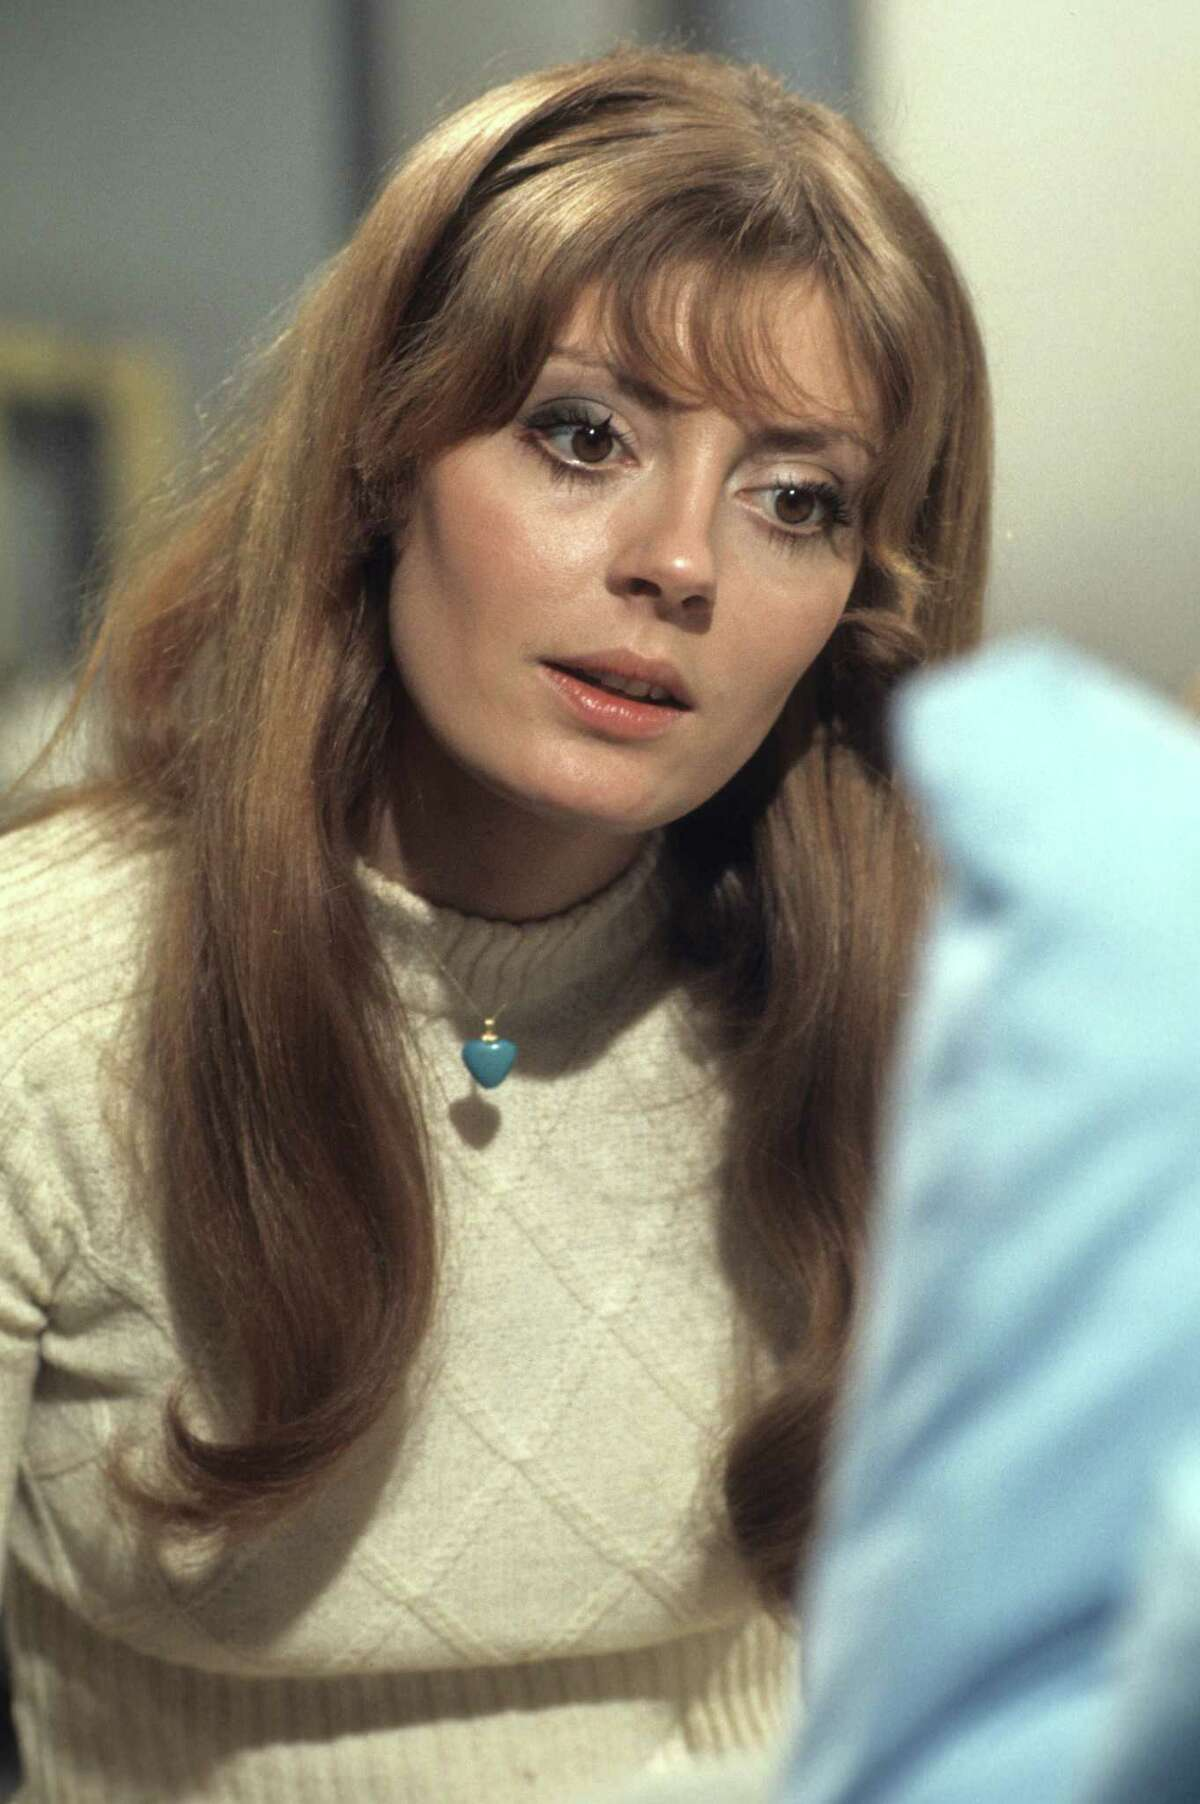 Sarandon appears here in another promotional photo from the show, dated March 19, 1971. She moved from this to a career as a leading actress in some of the most popular and critically acclaimed films of the last half-century. Let's take a look at some of those roles.